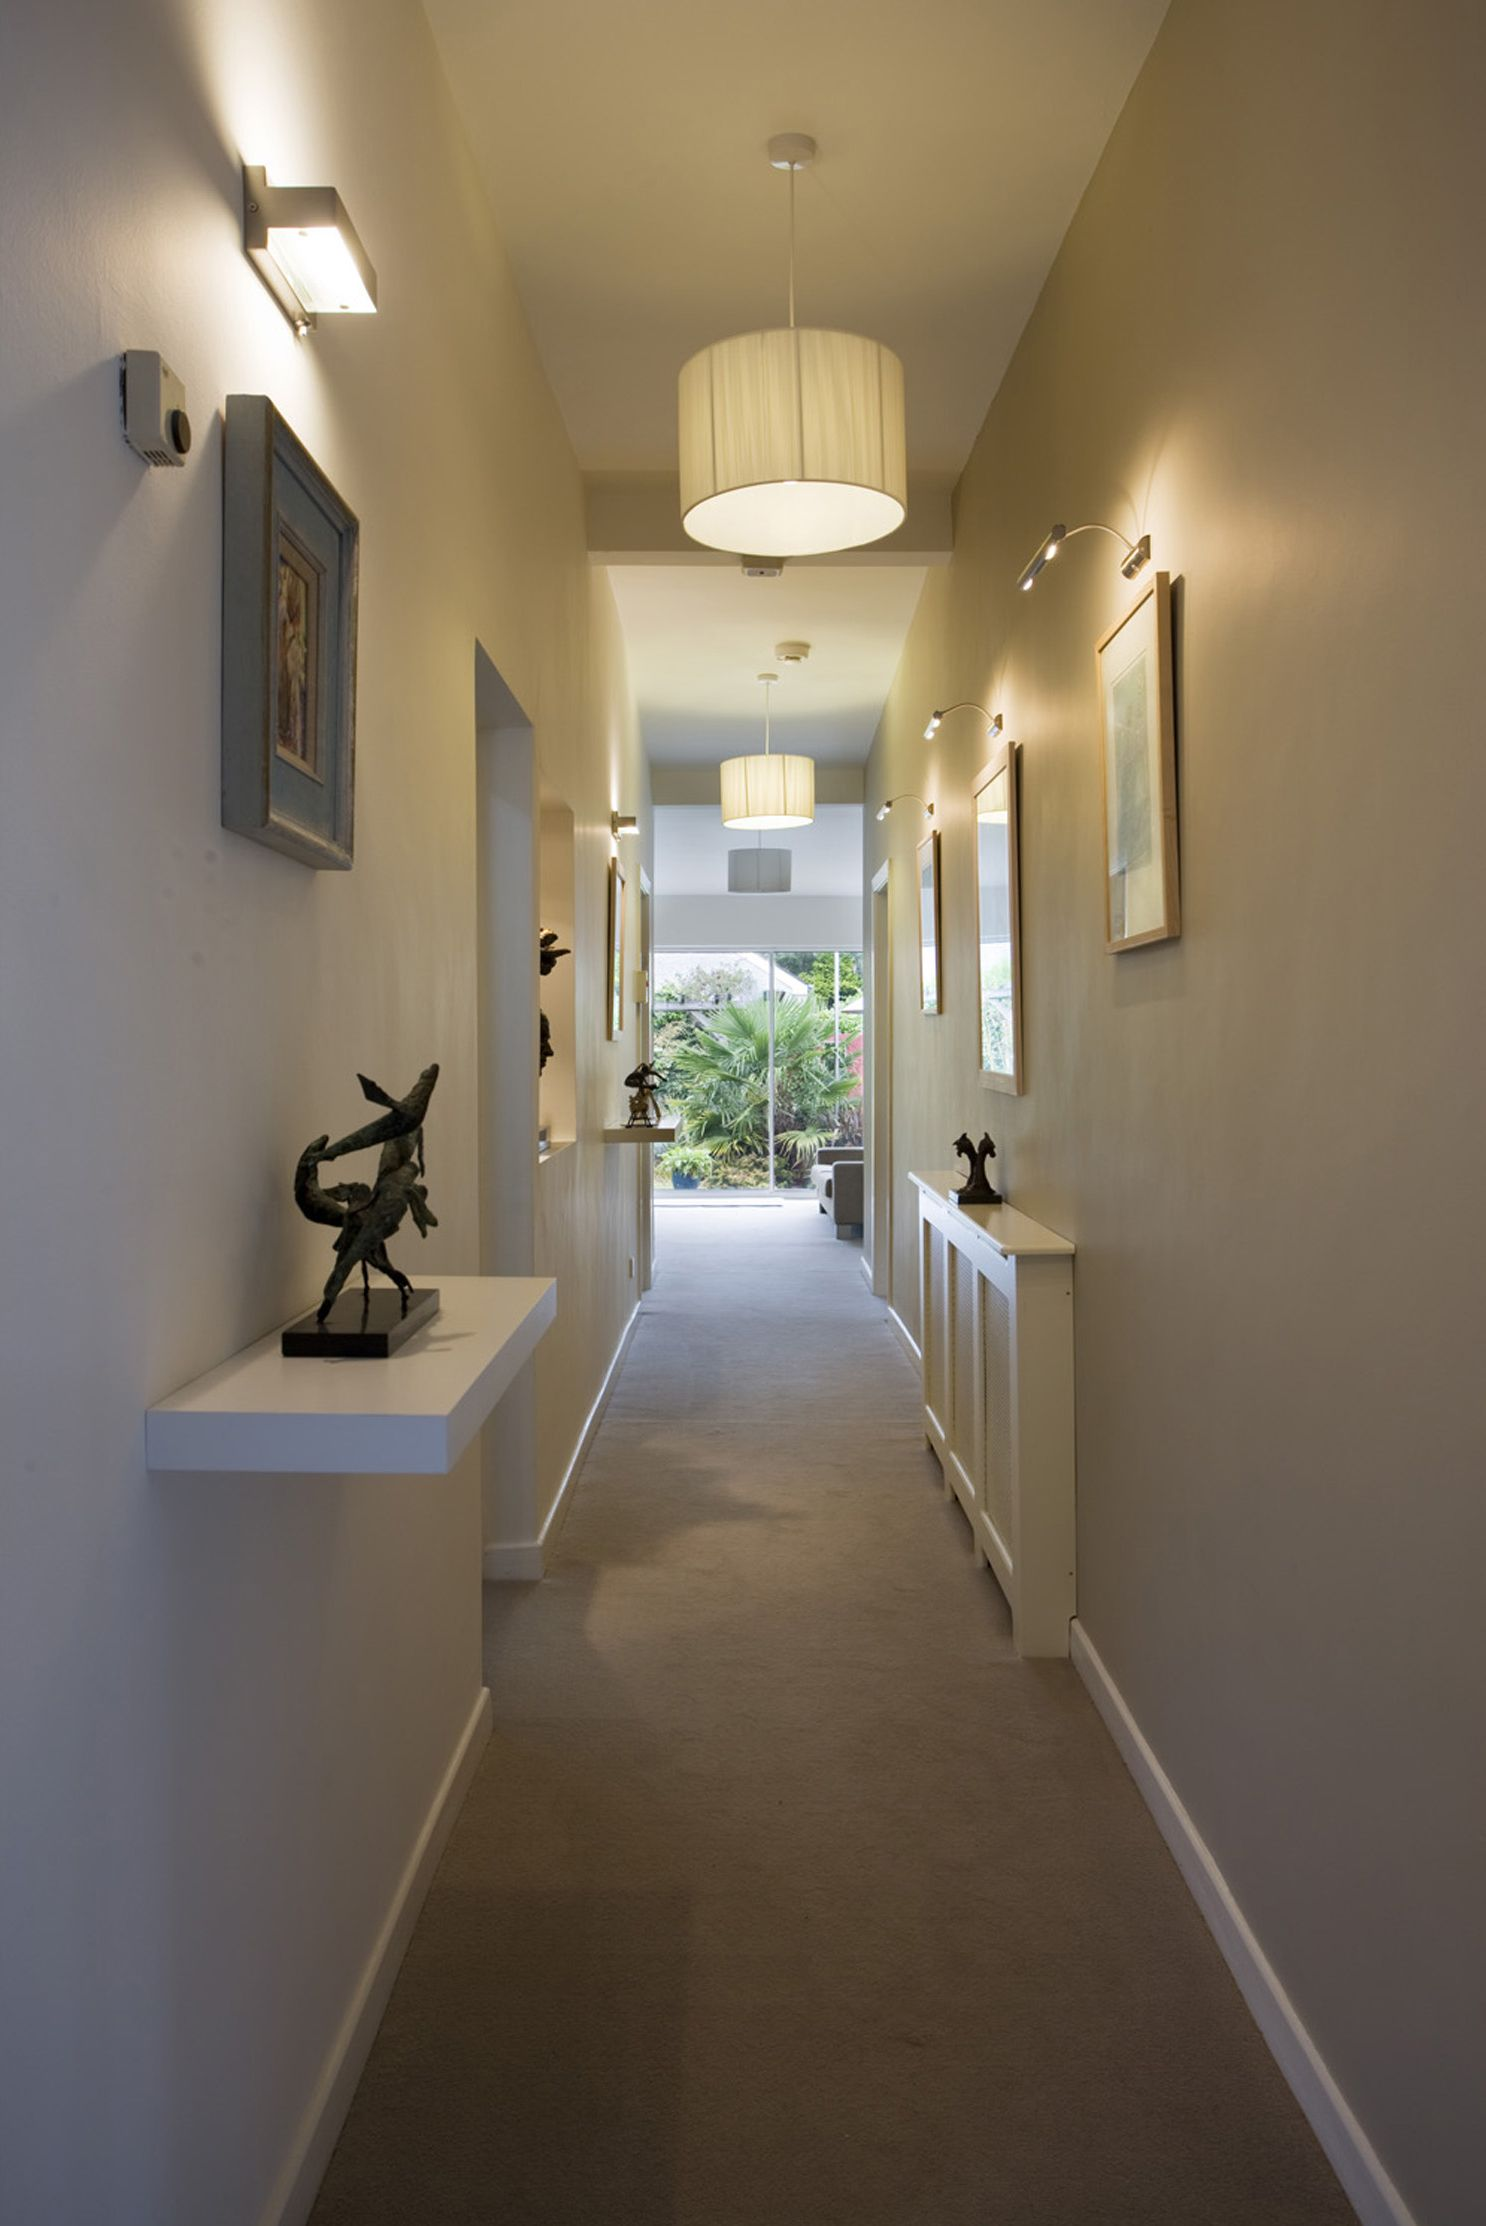 Lighting Ideas Hallway With White Drum Shade Pendant Lamps And Wall Sconces Over Framed Pictures Tips For Choosing